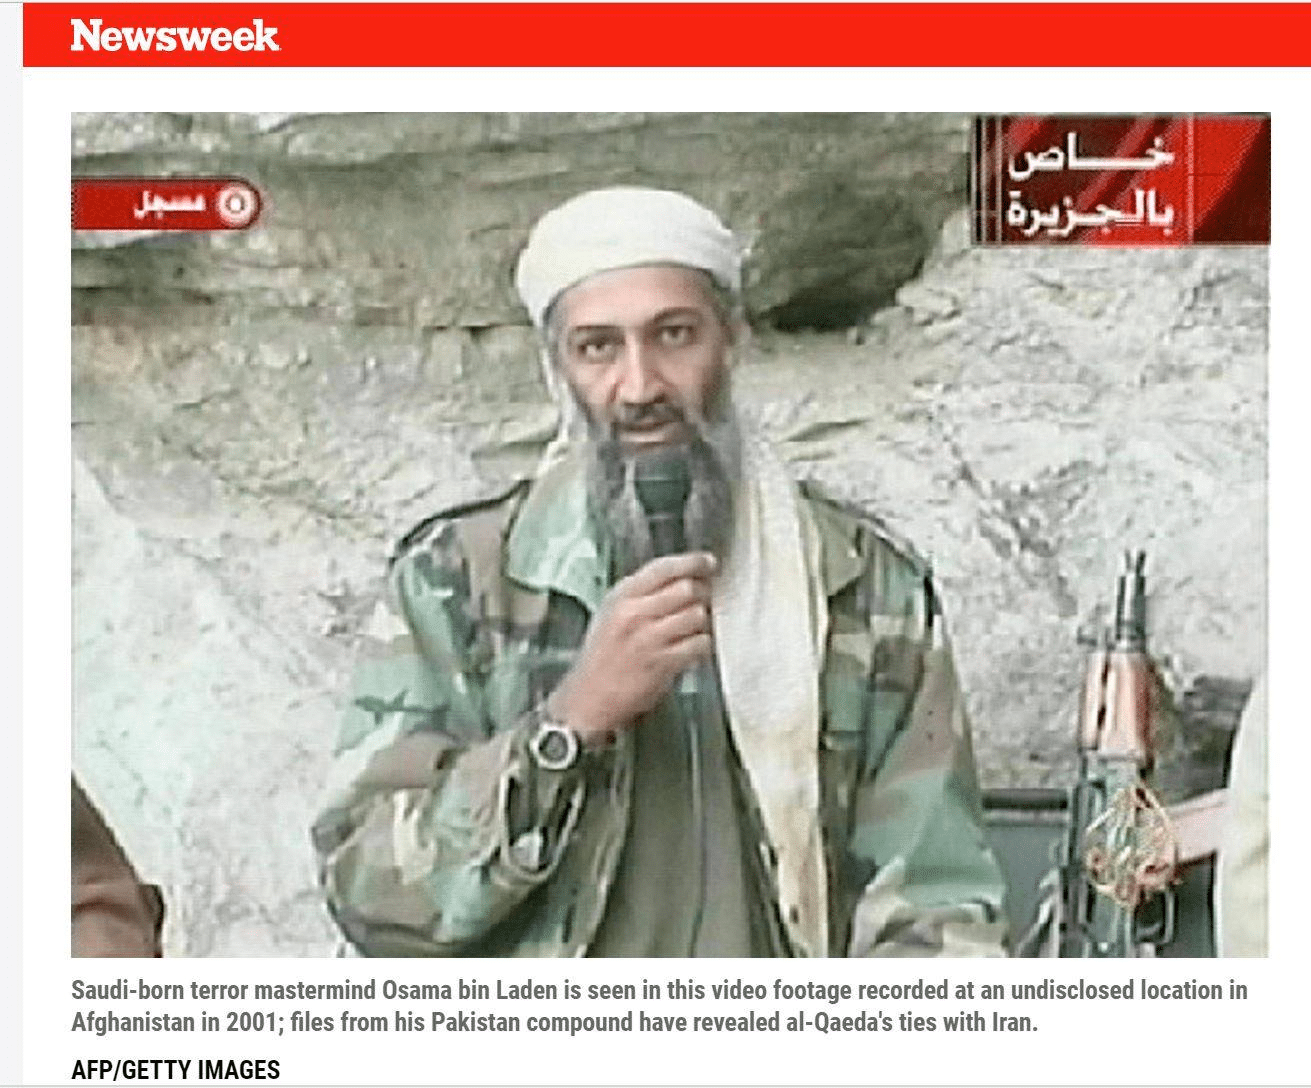 Recovered files from Al-Qaeda show Iranian Regime's close links to Bin Laden.